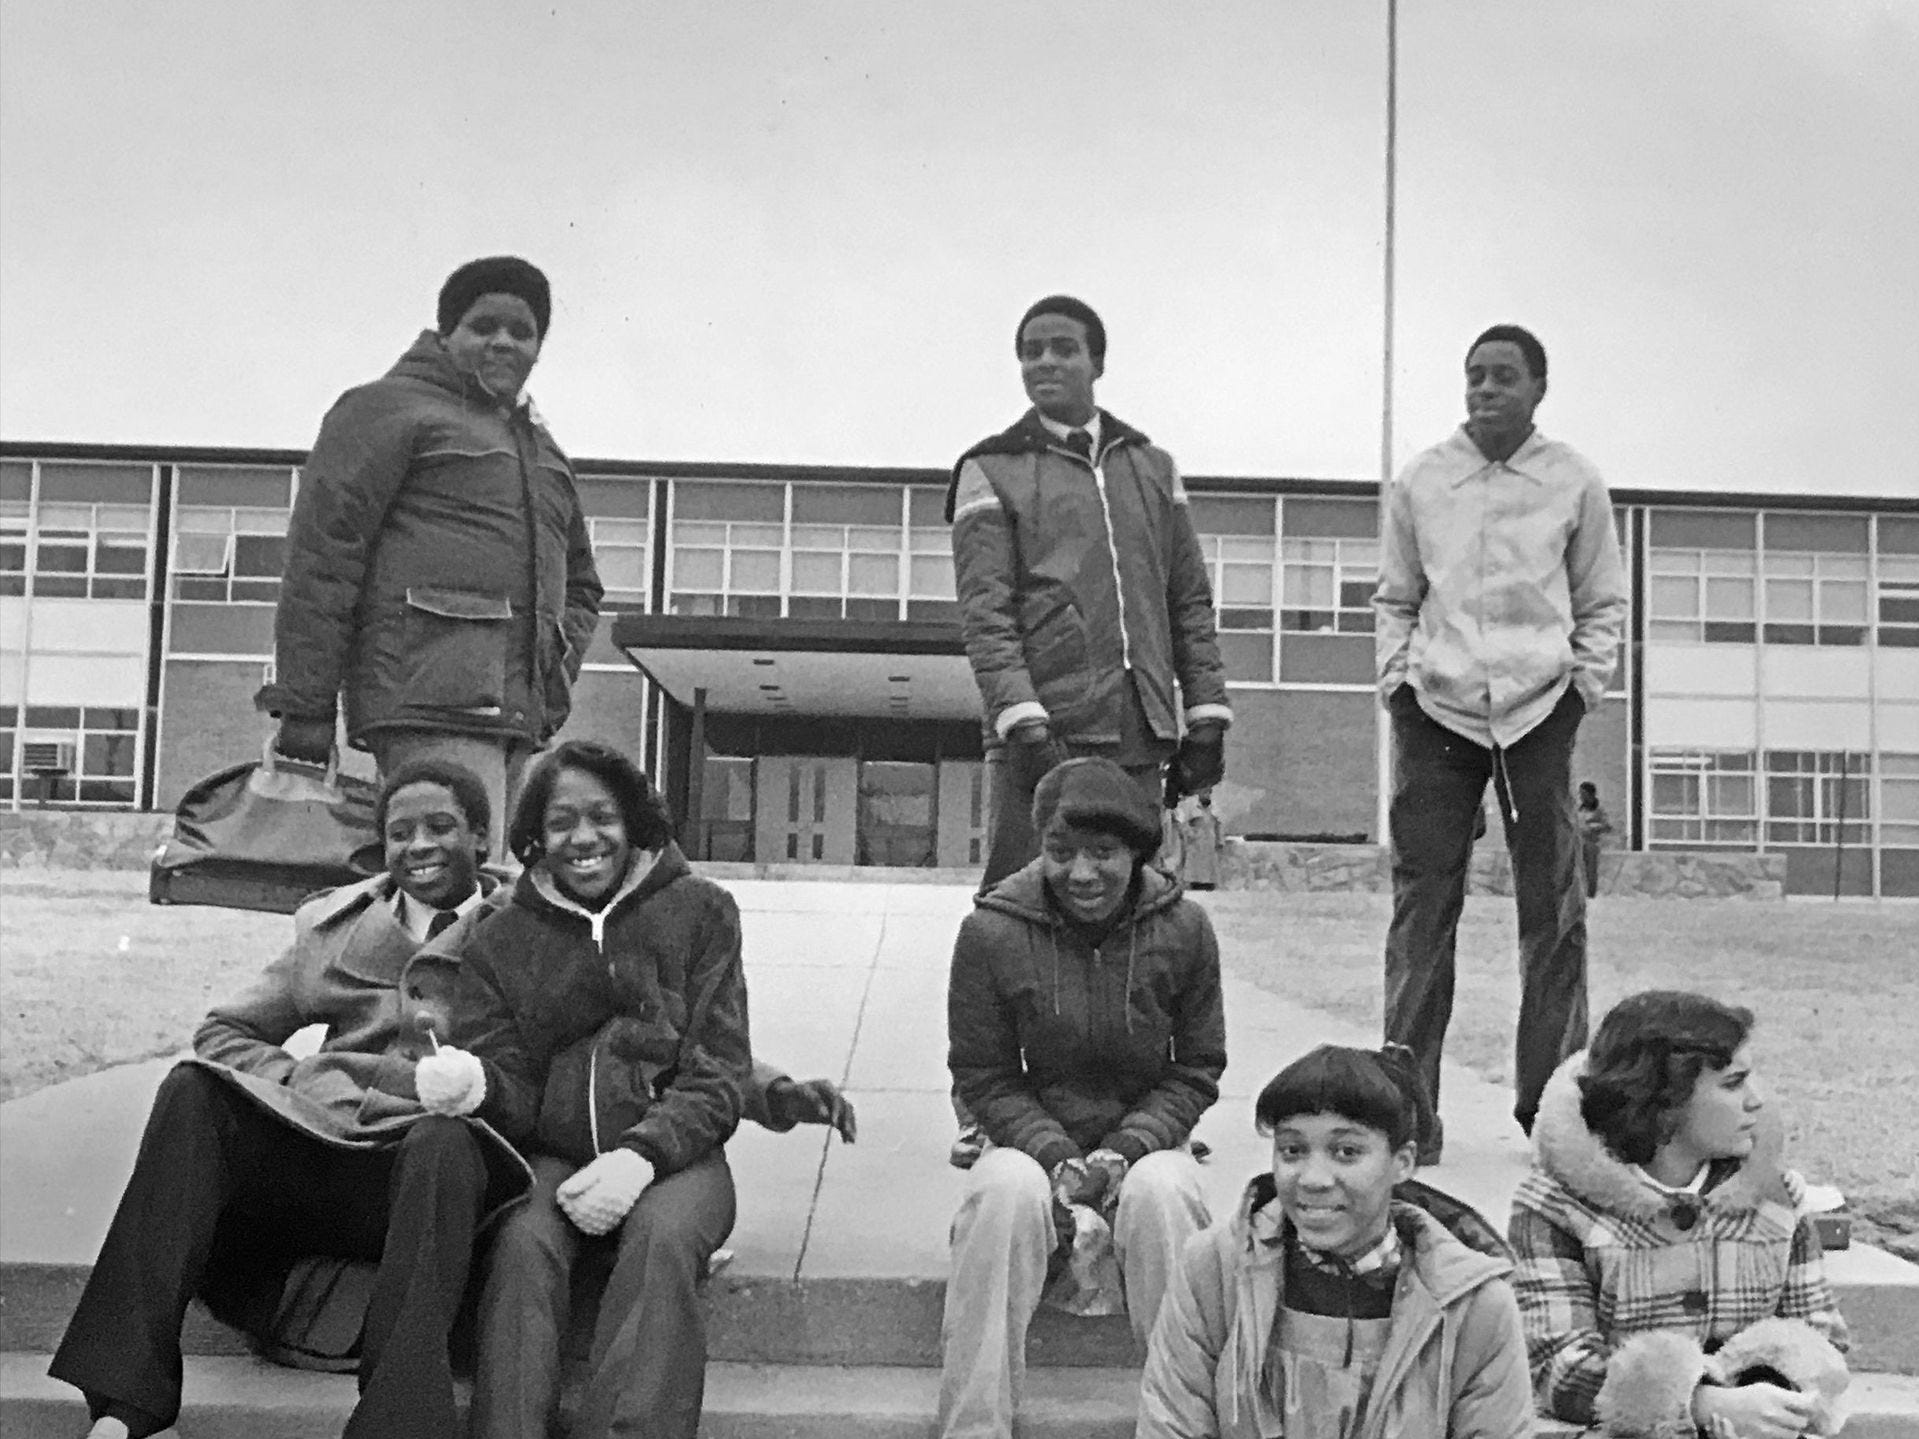 Students wait for the bus outside Arlington High School in 1980.